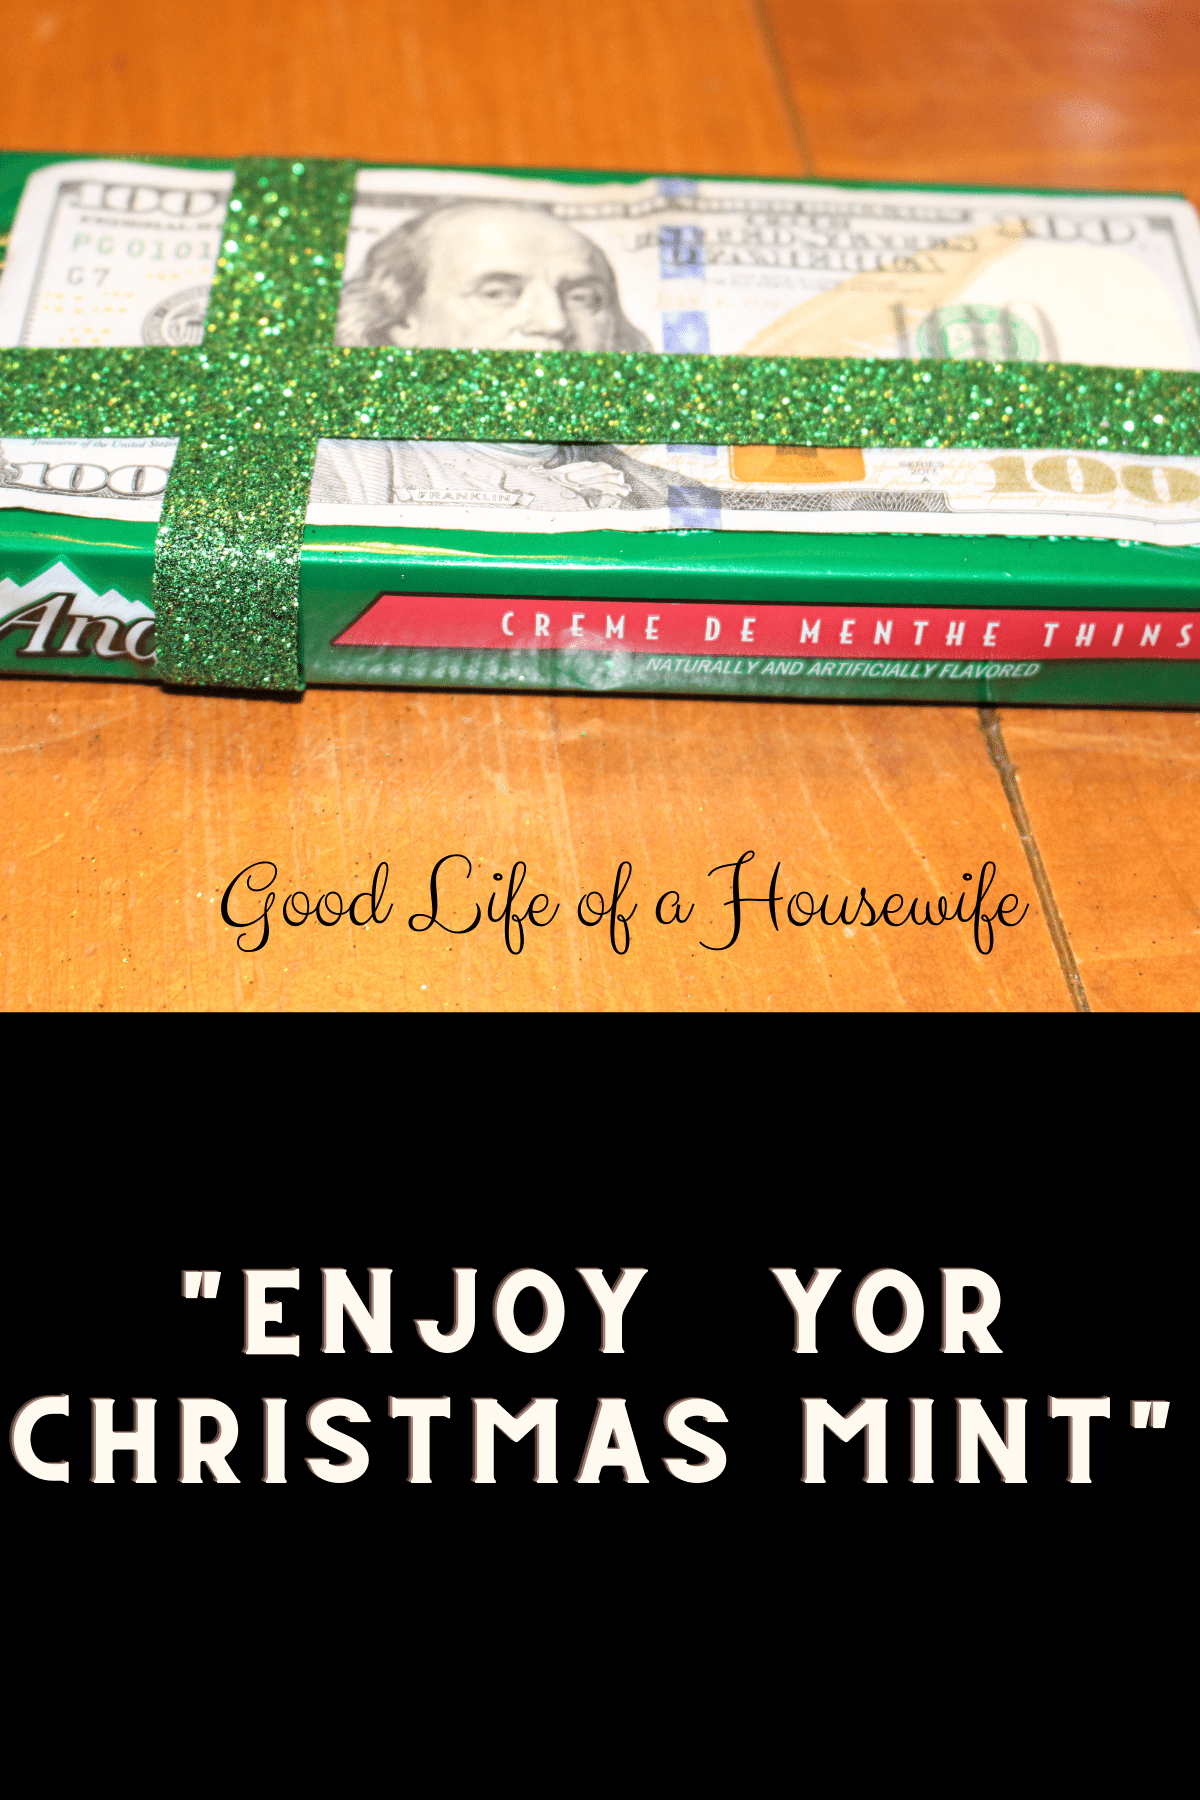 Cash Christmas Gift Idea for Kids - Good Life of a Housewife